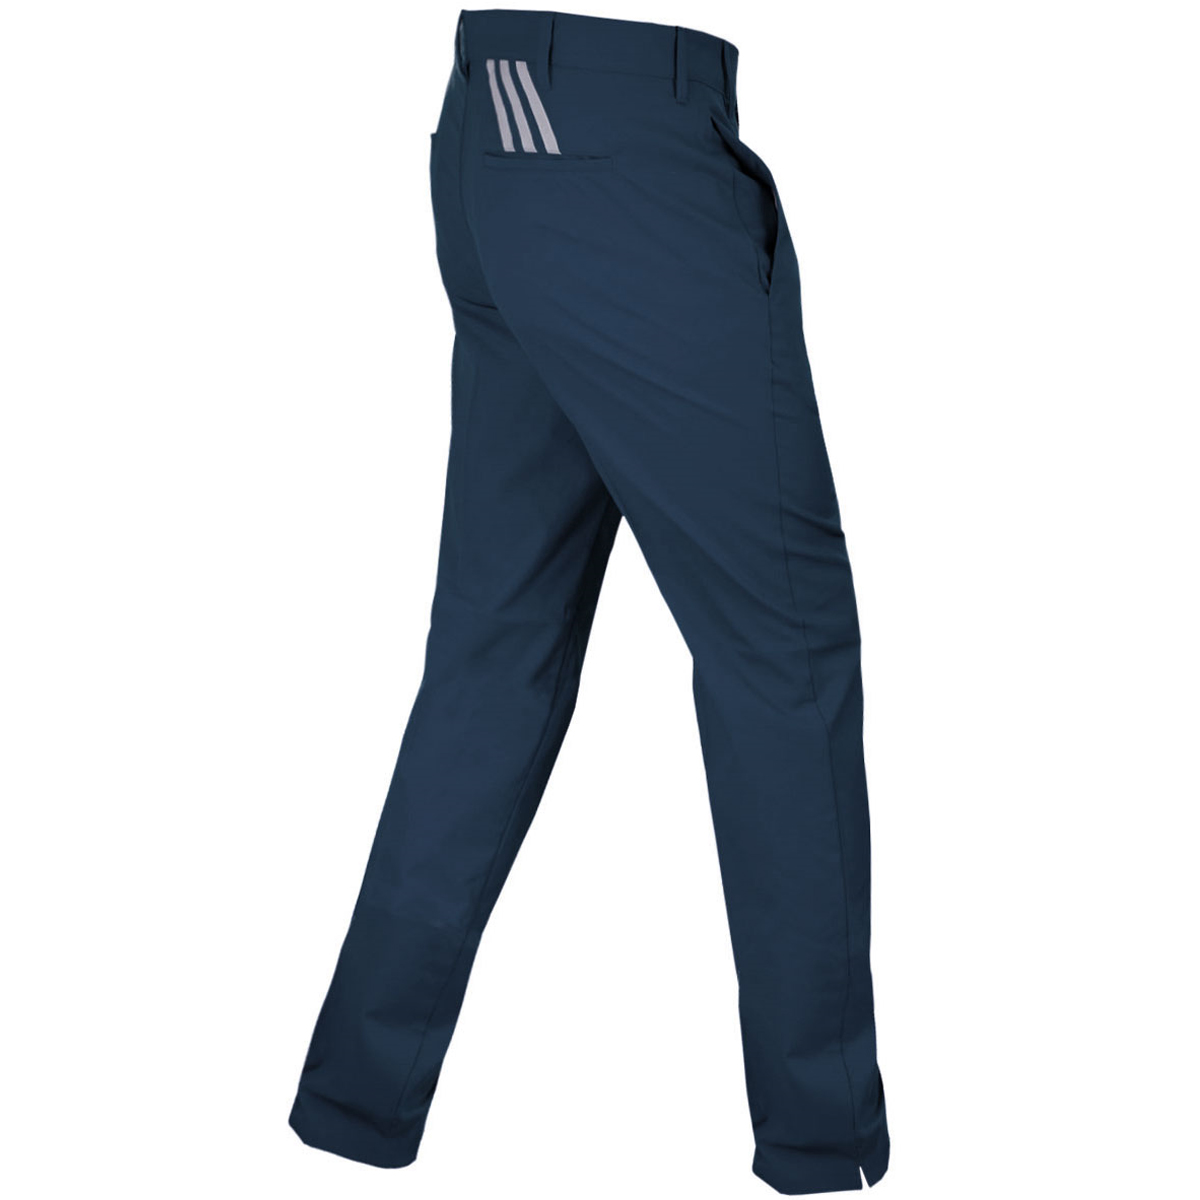 adidas golf 2016 mens puremotion 3 stripes pant performance tech trousers ebay. Black Bedroom Furniture Sets. Home Design Ideas